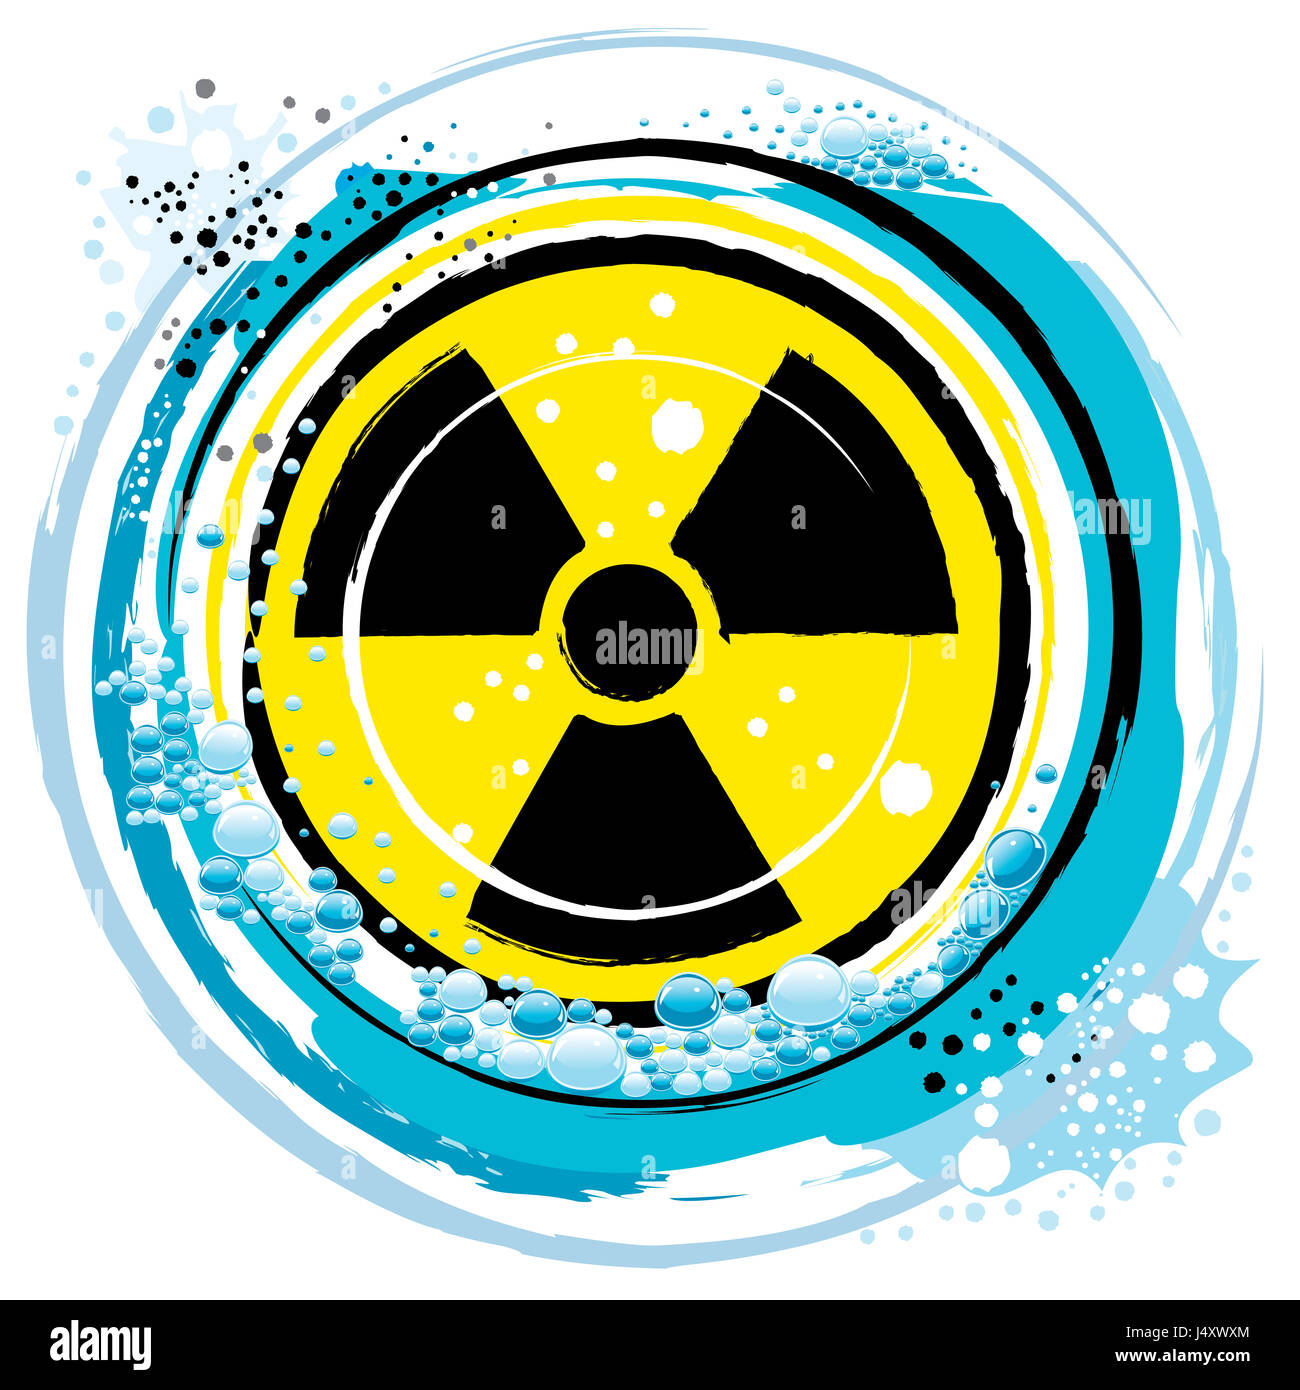 in the radiation symbol on the ocean waves - Stock Image